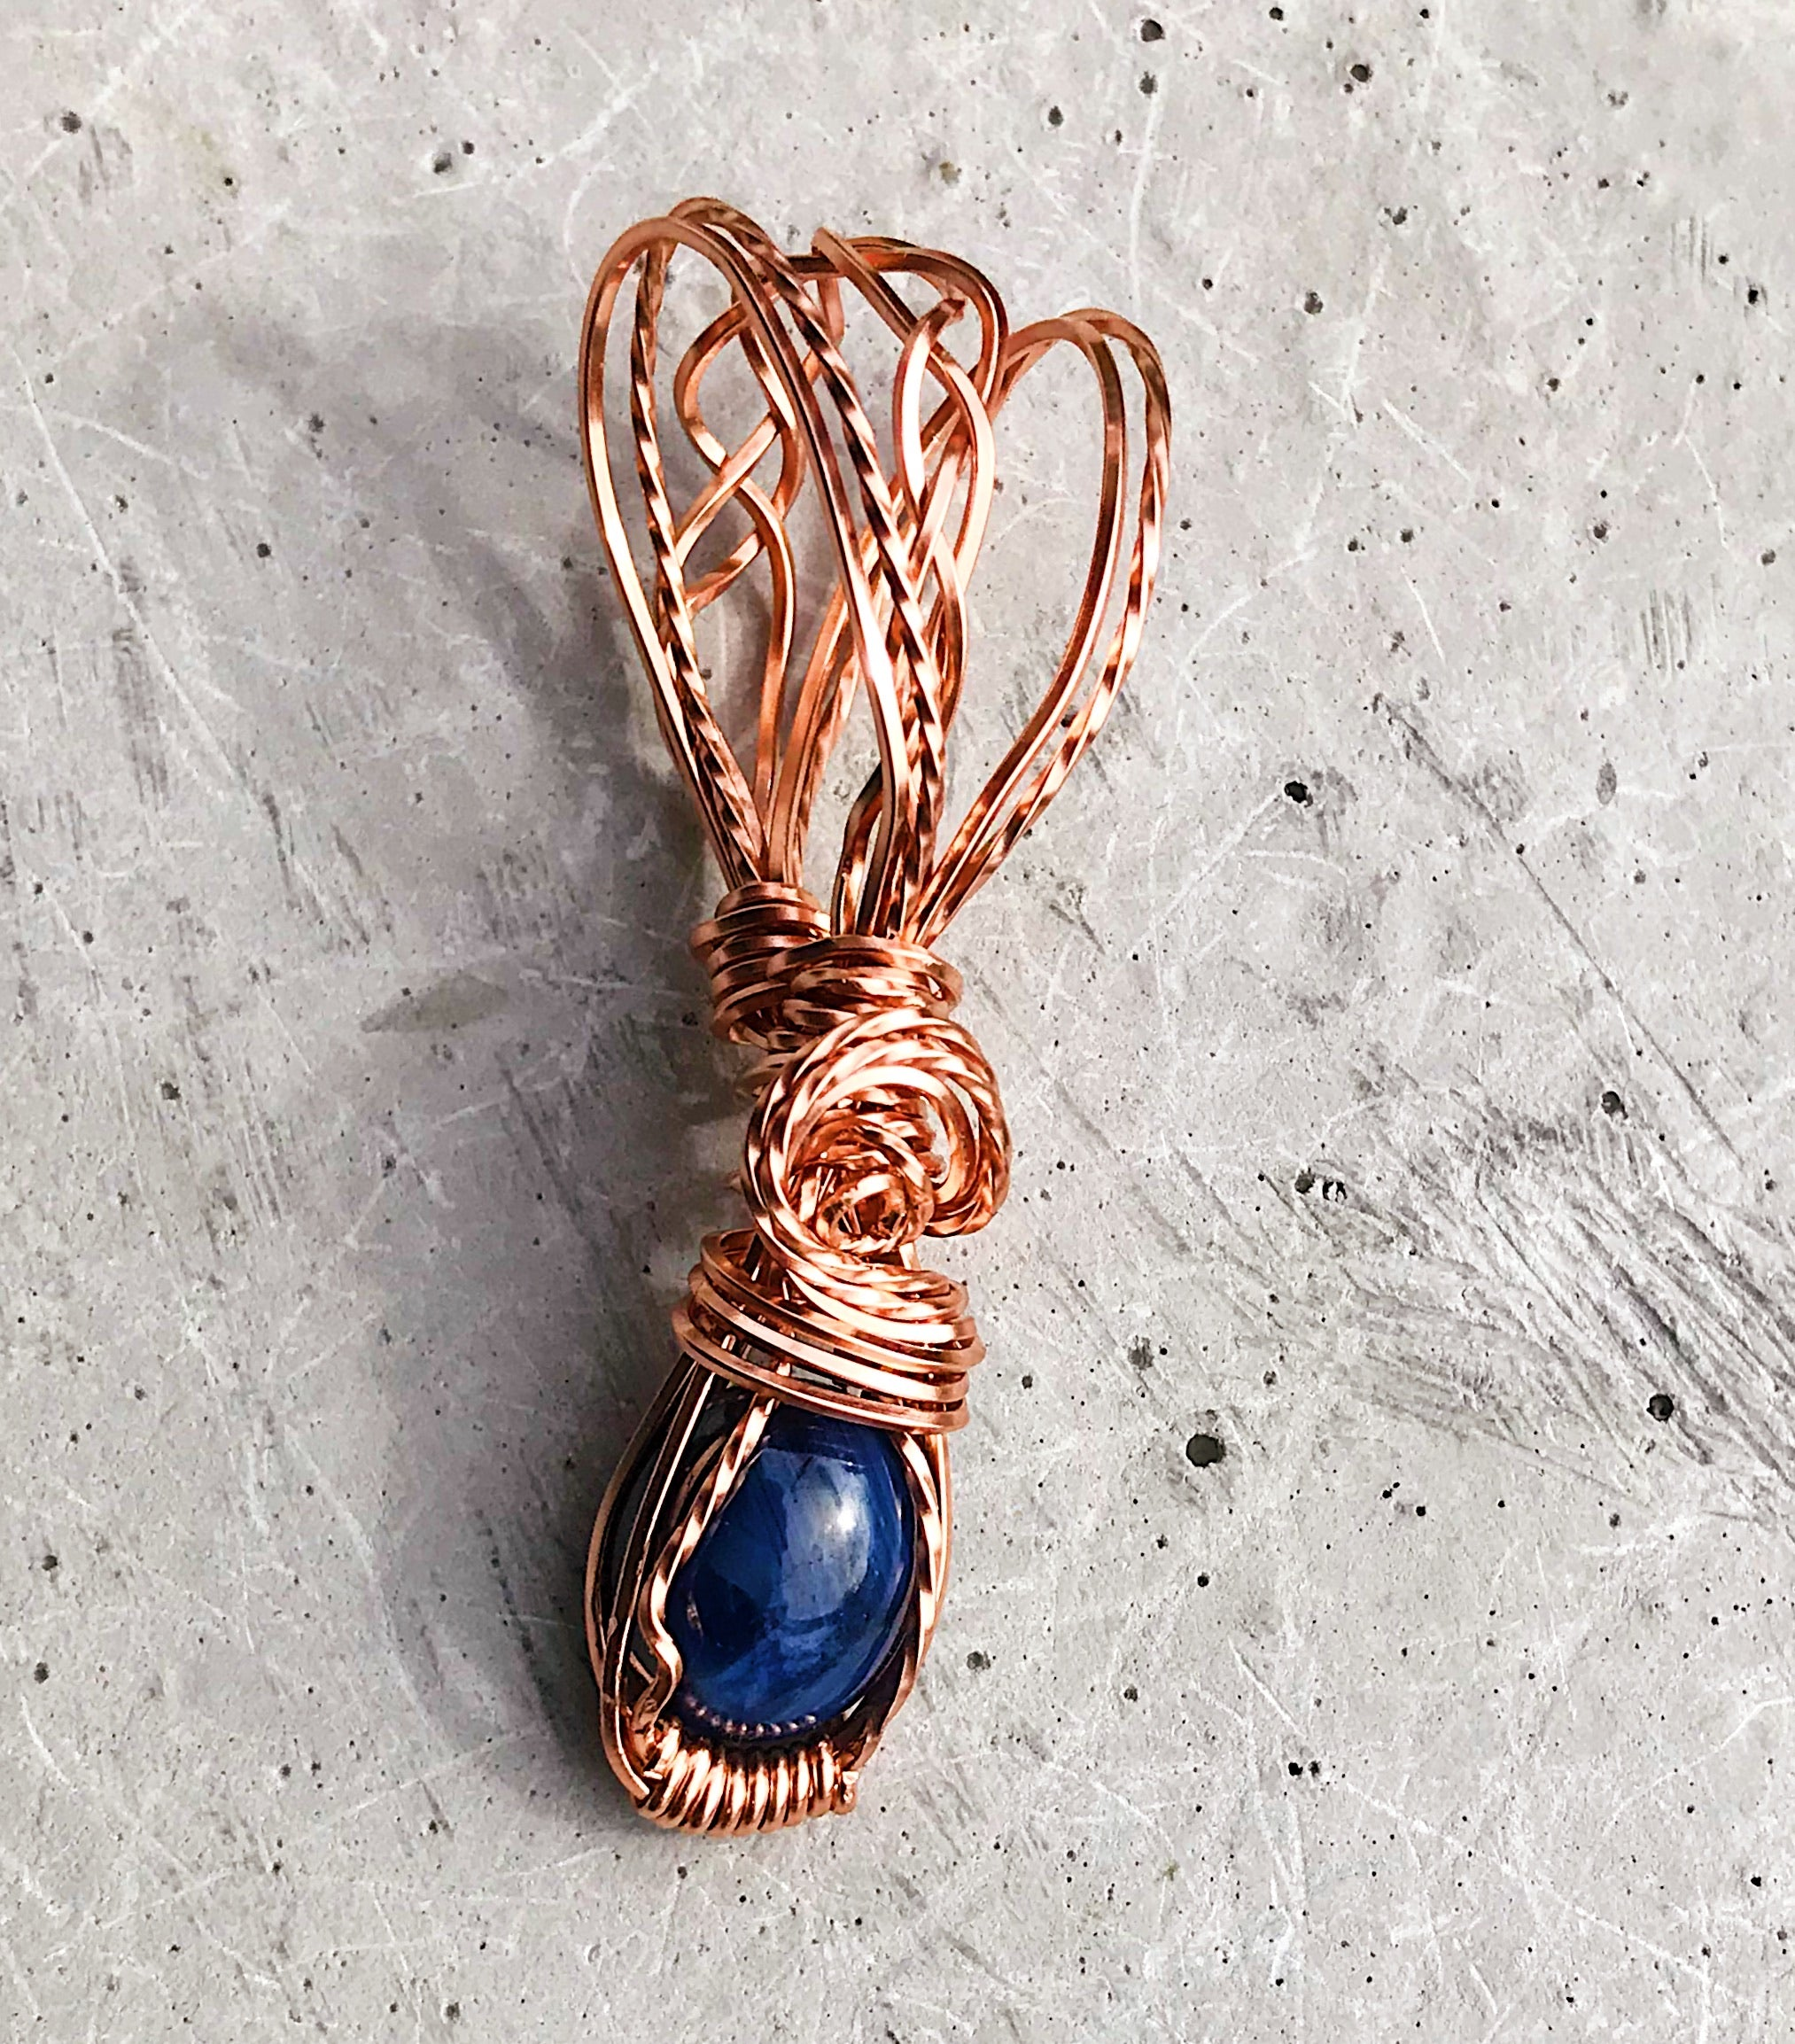 Sapphire pendant in 14K Rose gold filled wire